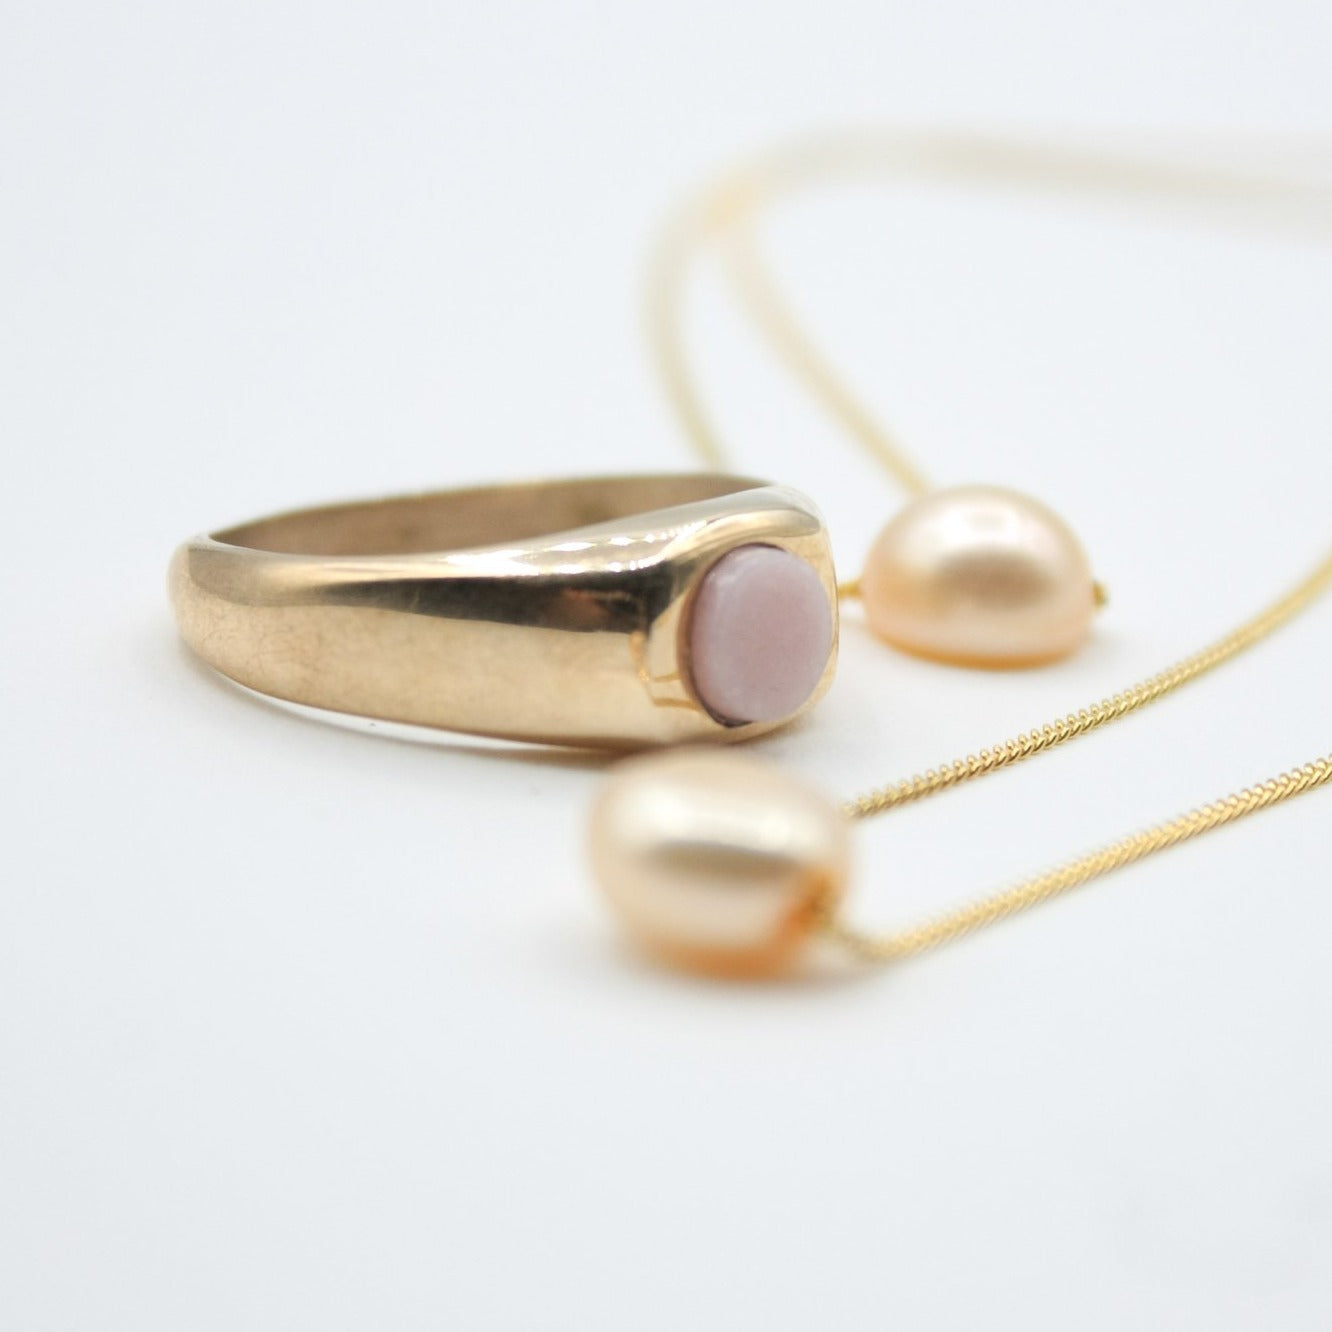 Rosé Signet Ring Lorne Ring - White Label Project